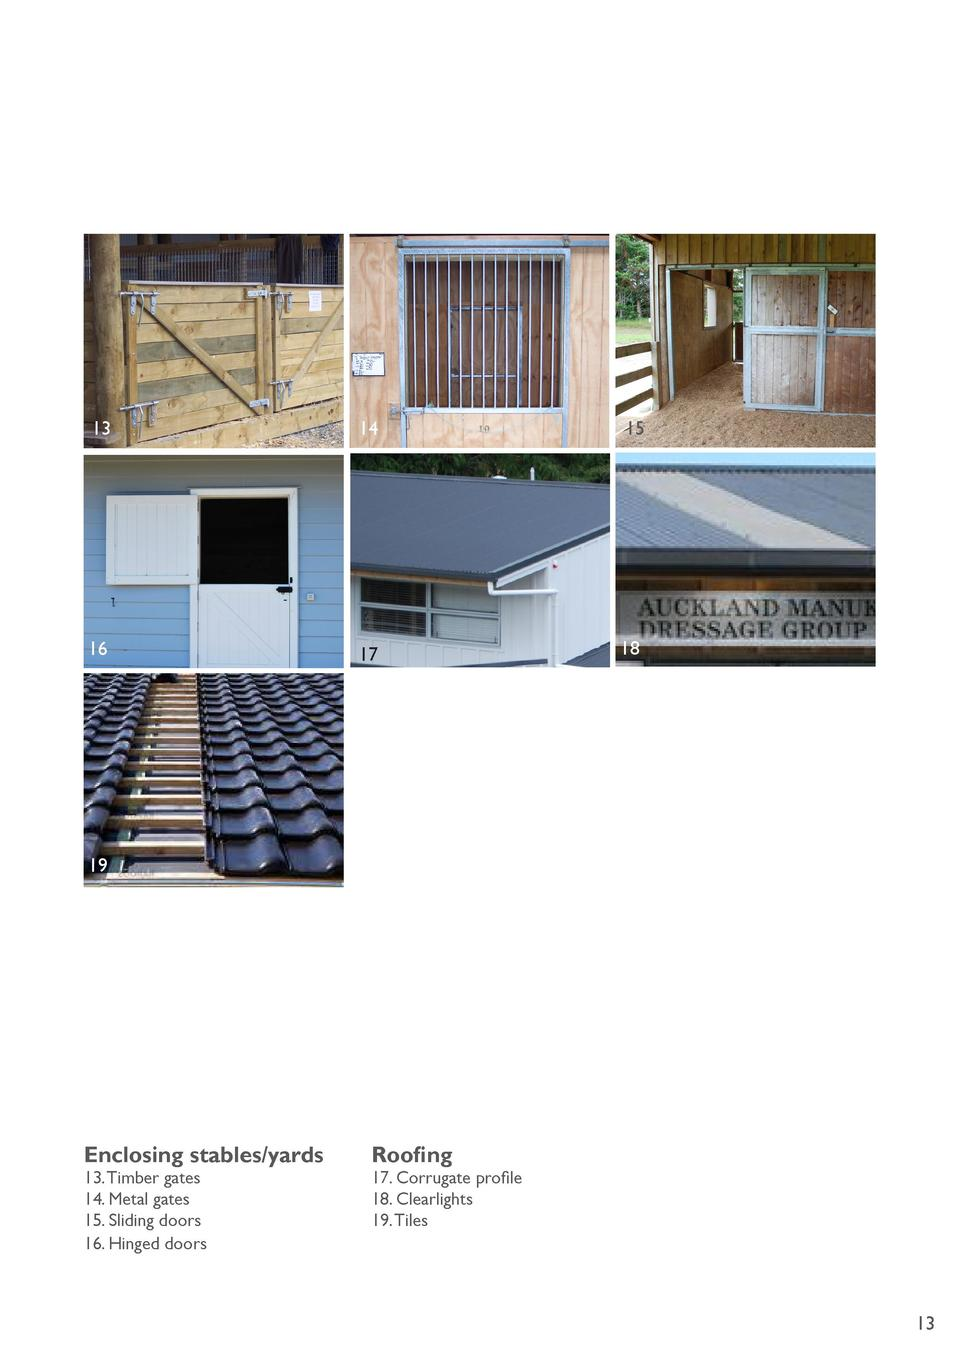 13  14  15  16  17  18  19  Enclosing stables yards 13. Timber gates 14. Metal gates 15. Sliding doors 16. Hinged doors  R...